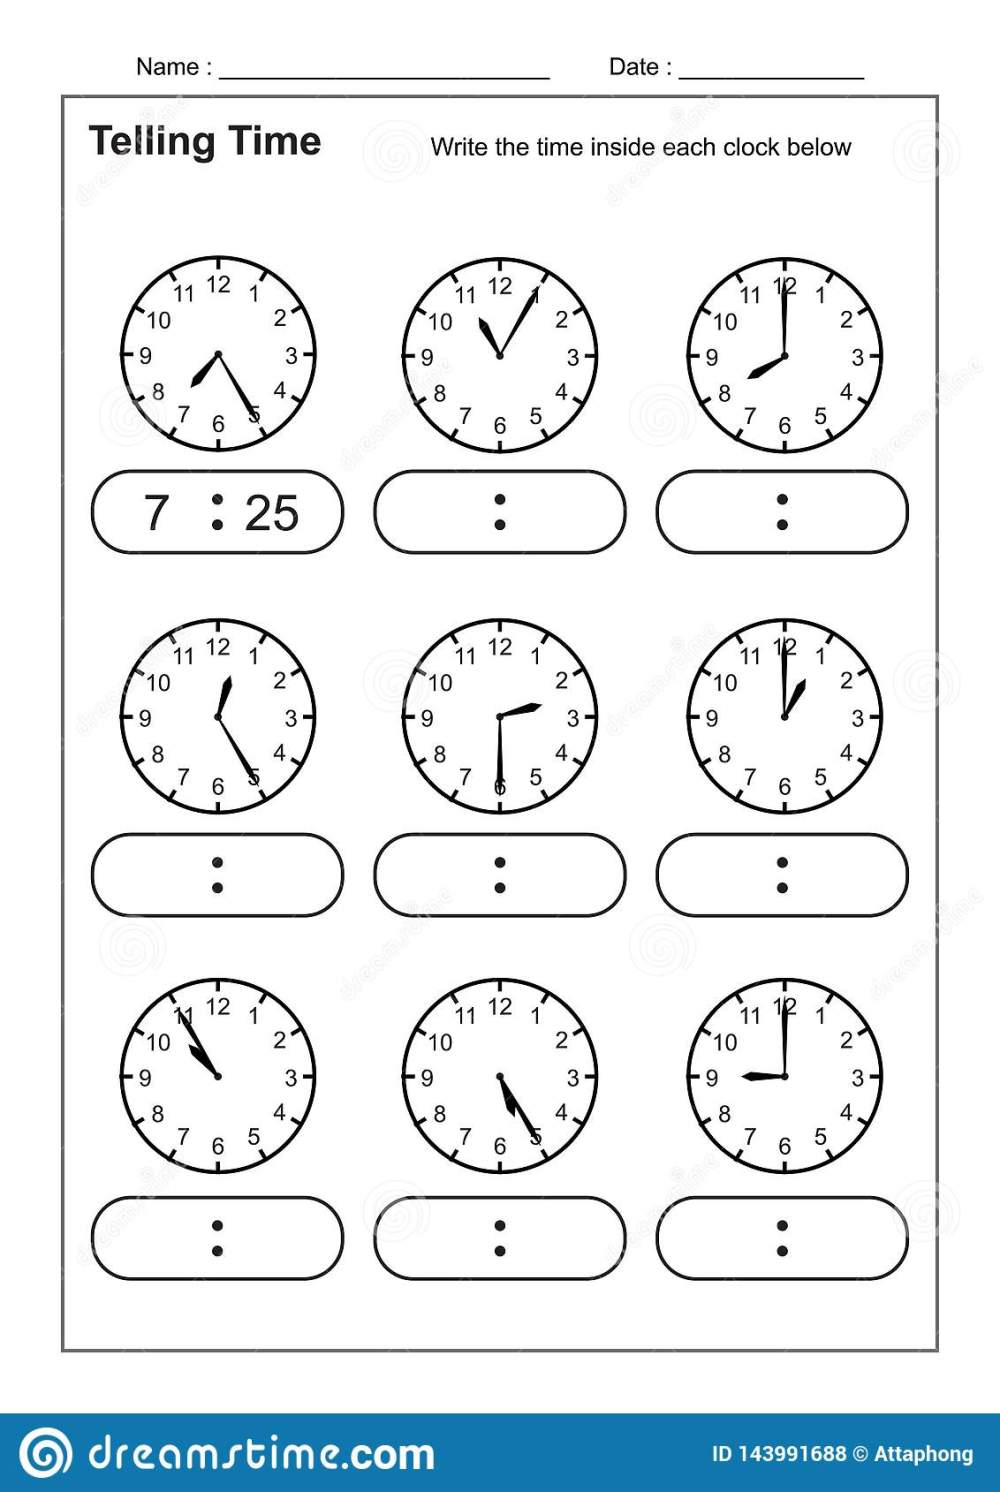 medium resolution of Telling Time Telling The Time Practice For Children Time Worksheets For  Learning To Tell Time Game Time Worksheets Stock Vector - Illustration of  game